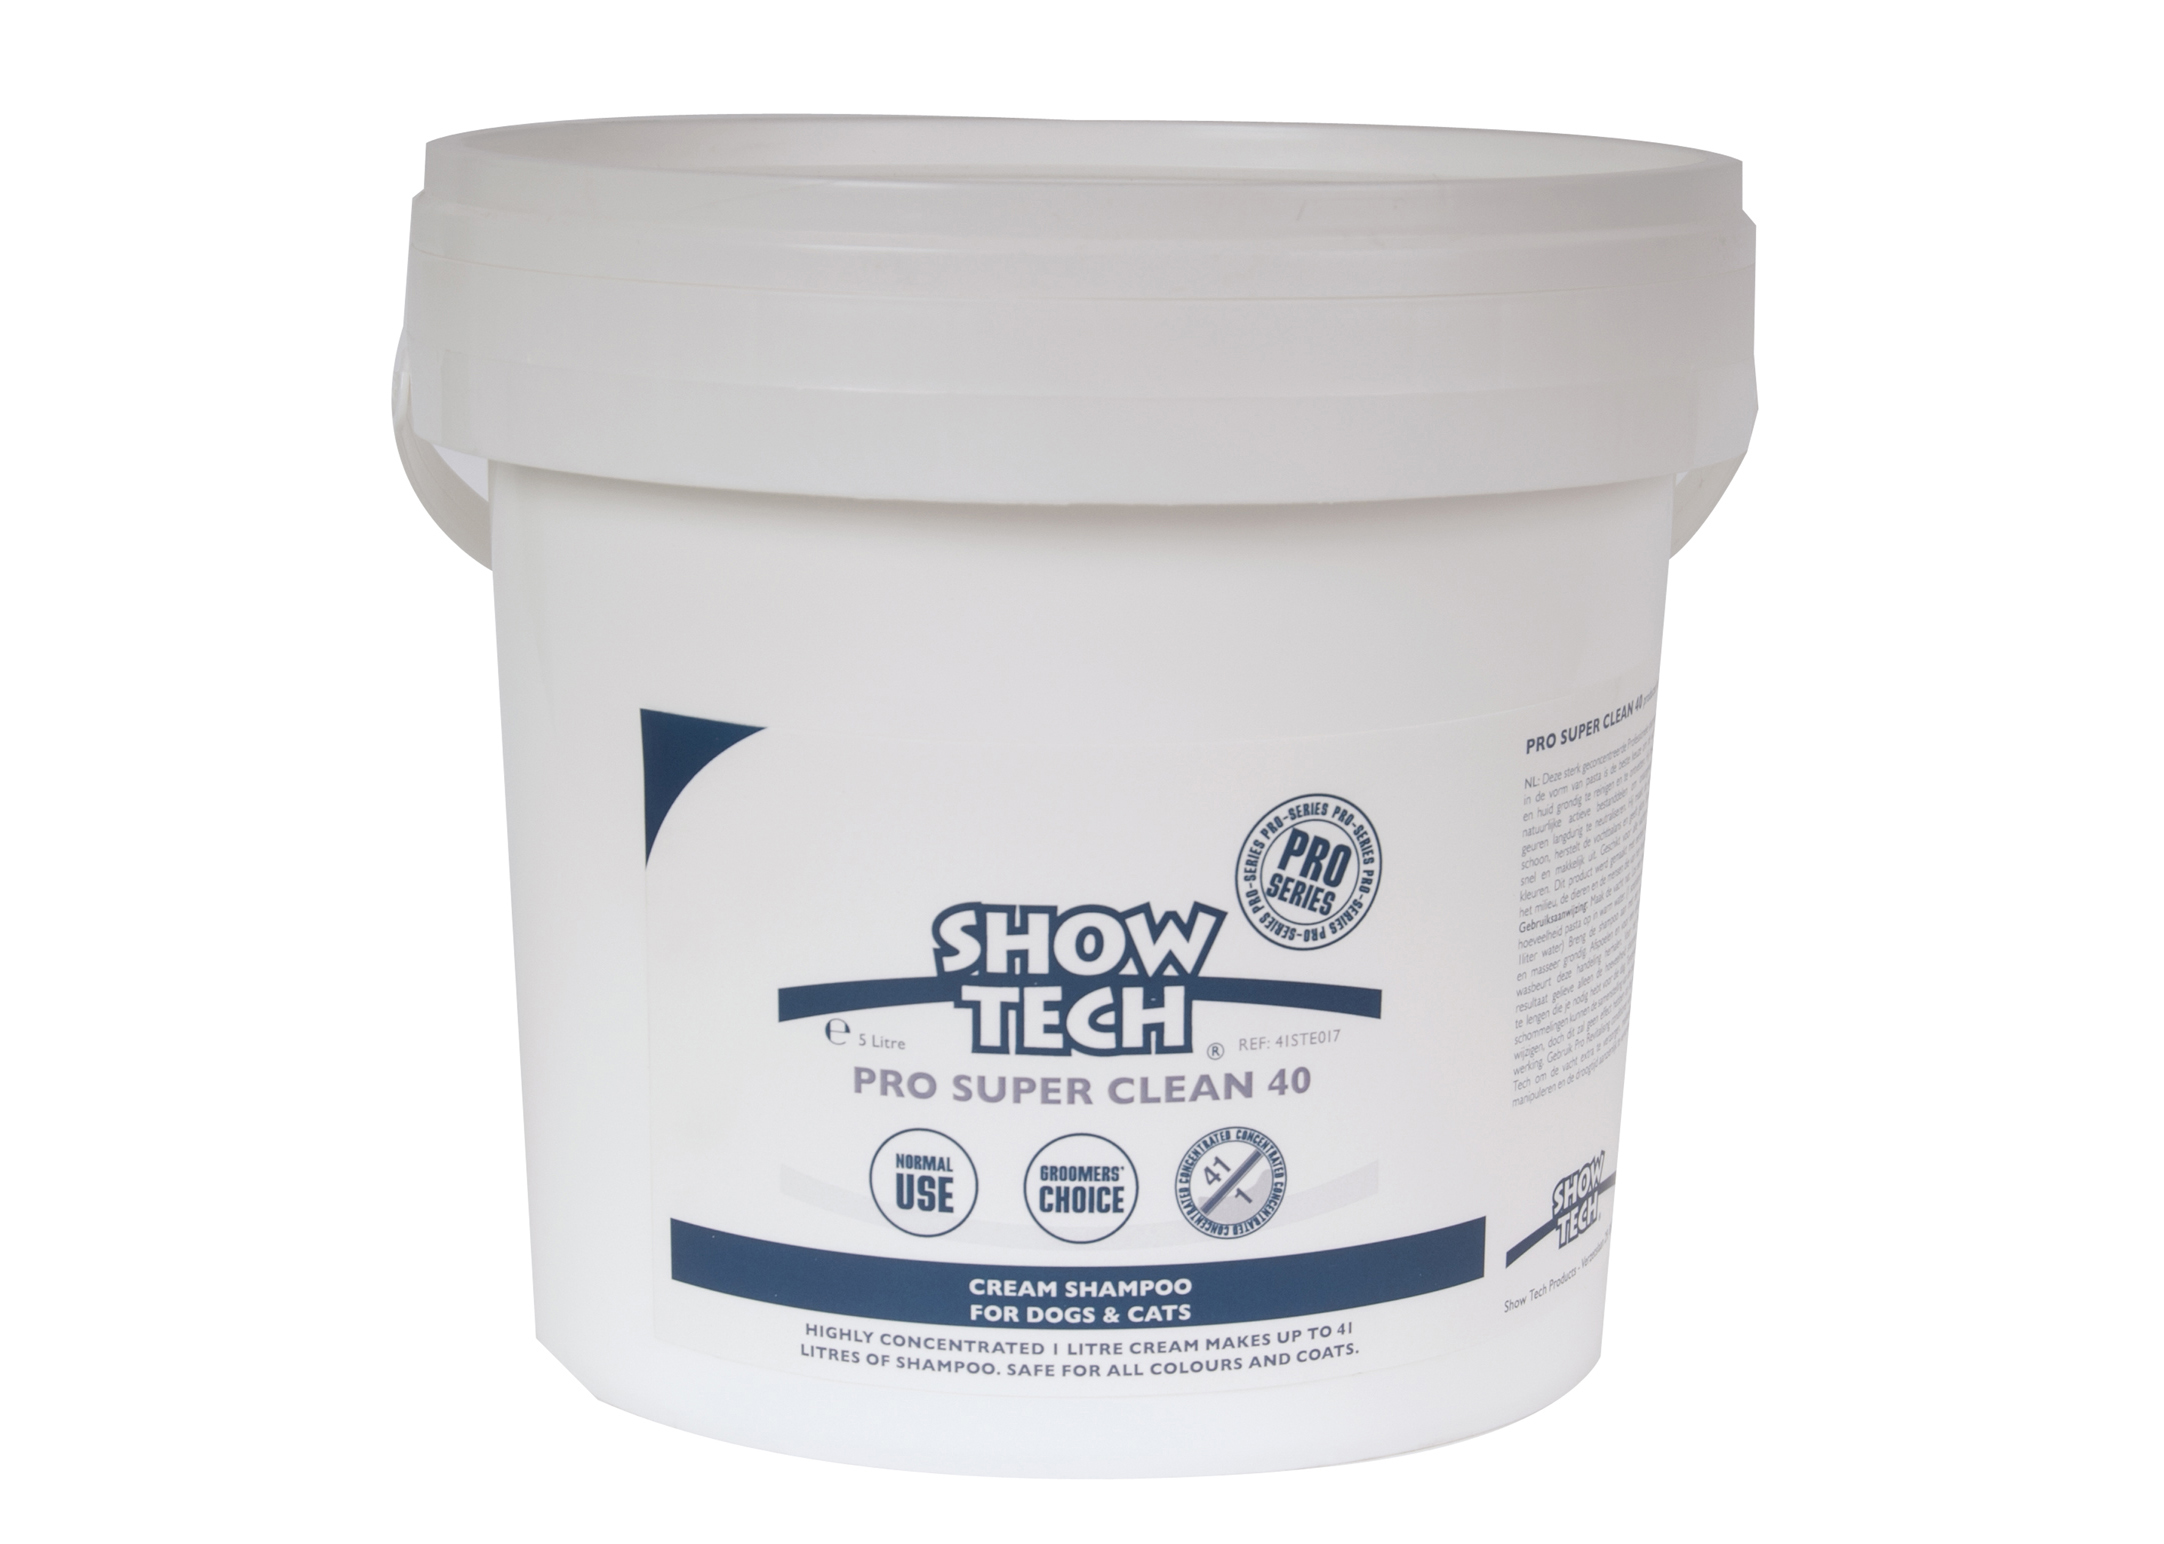 Show Tech Pro Super Clean 40 Shampoo For Dogs, Cats And Horses